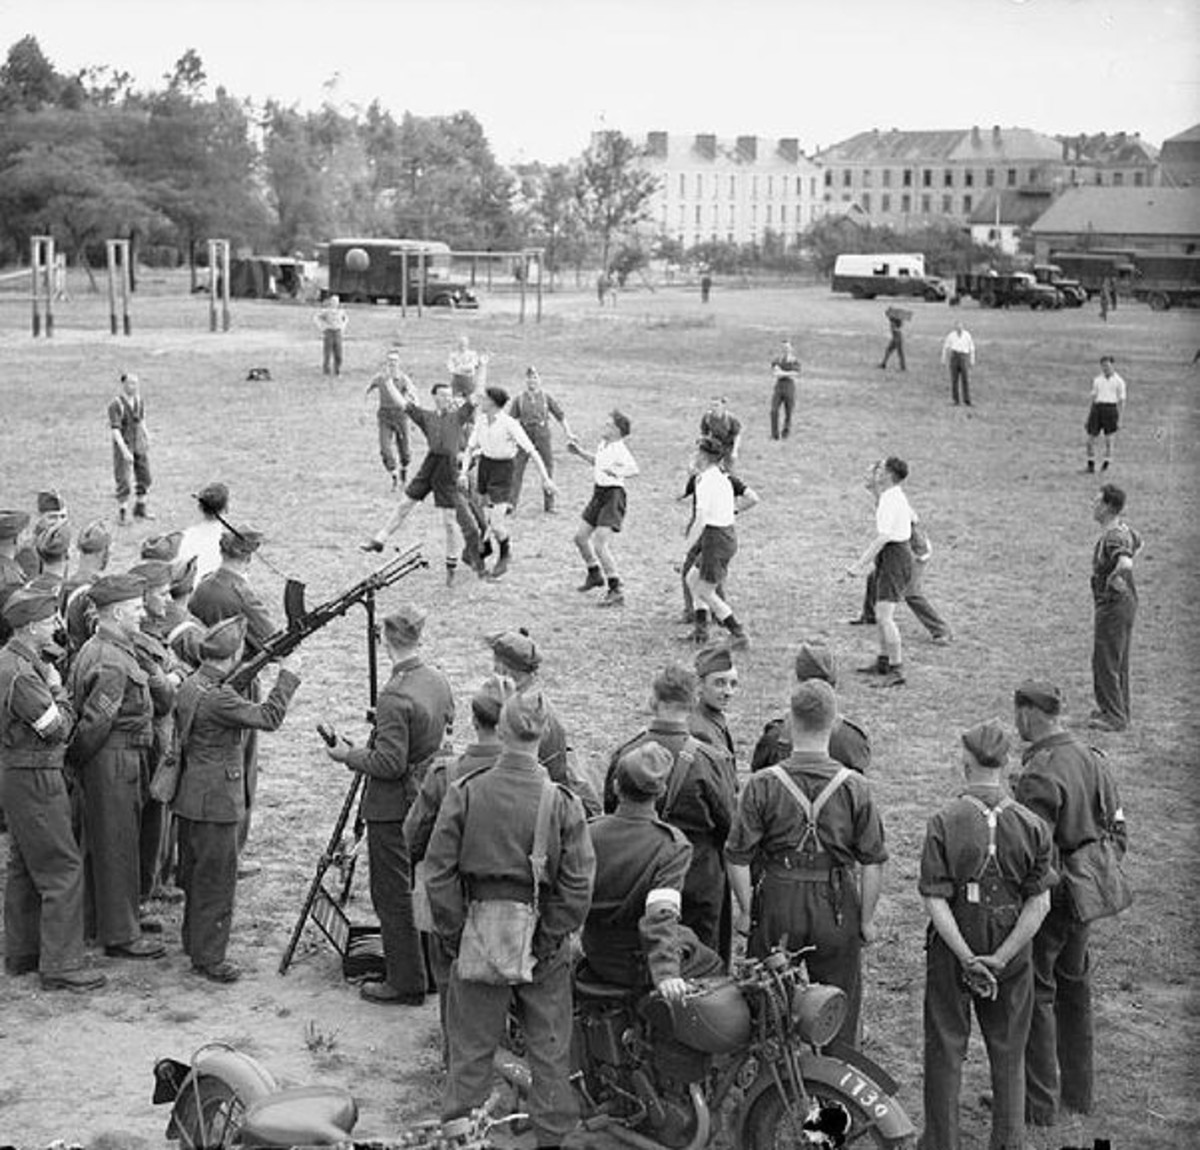 British soldiers playing football (soccer) in Le Mans, France during the Phoney War (1939-40). Note the gun mounted on a tripod in case the Germans attacked from the air.